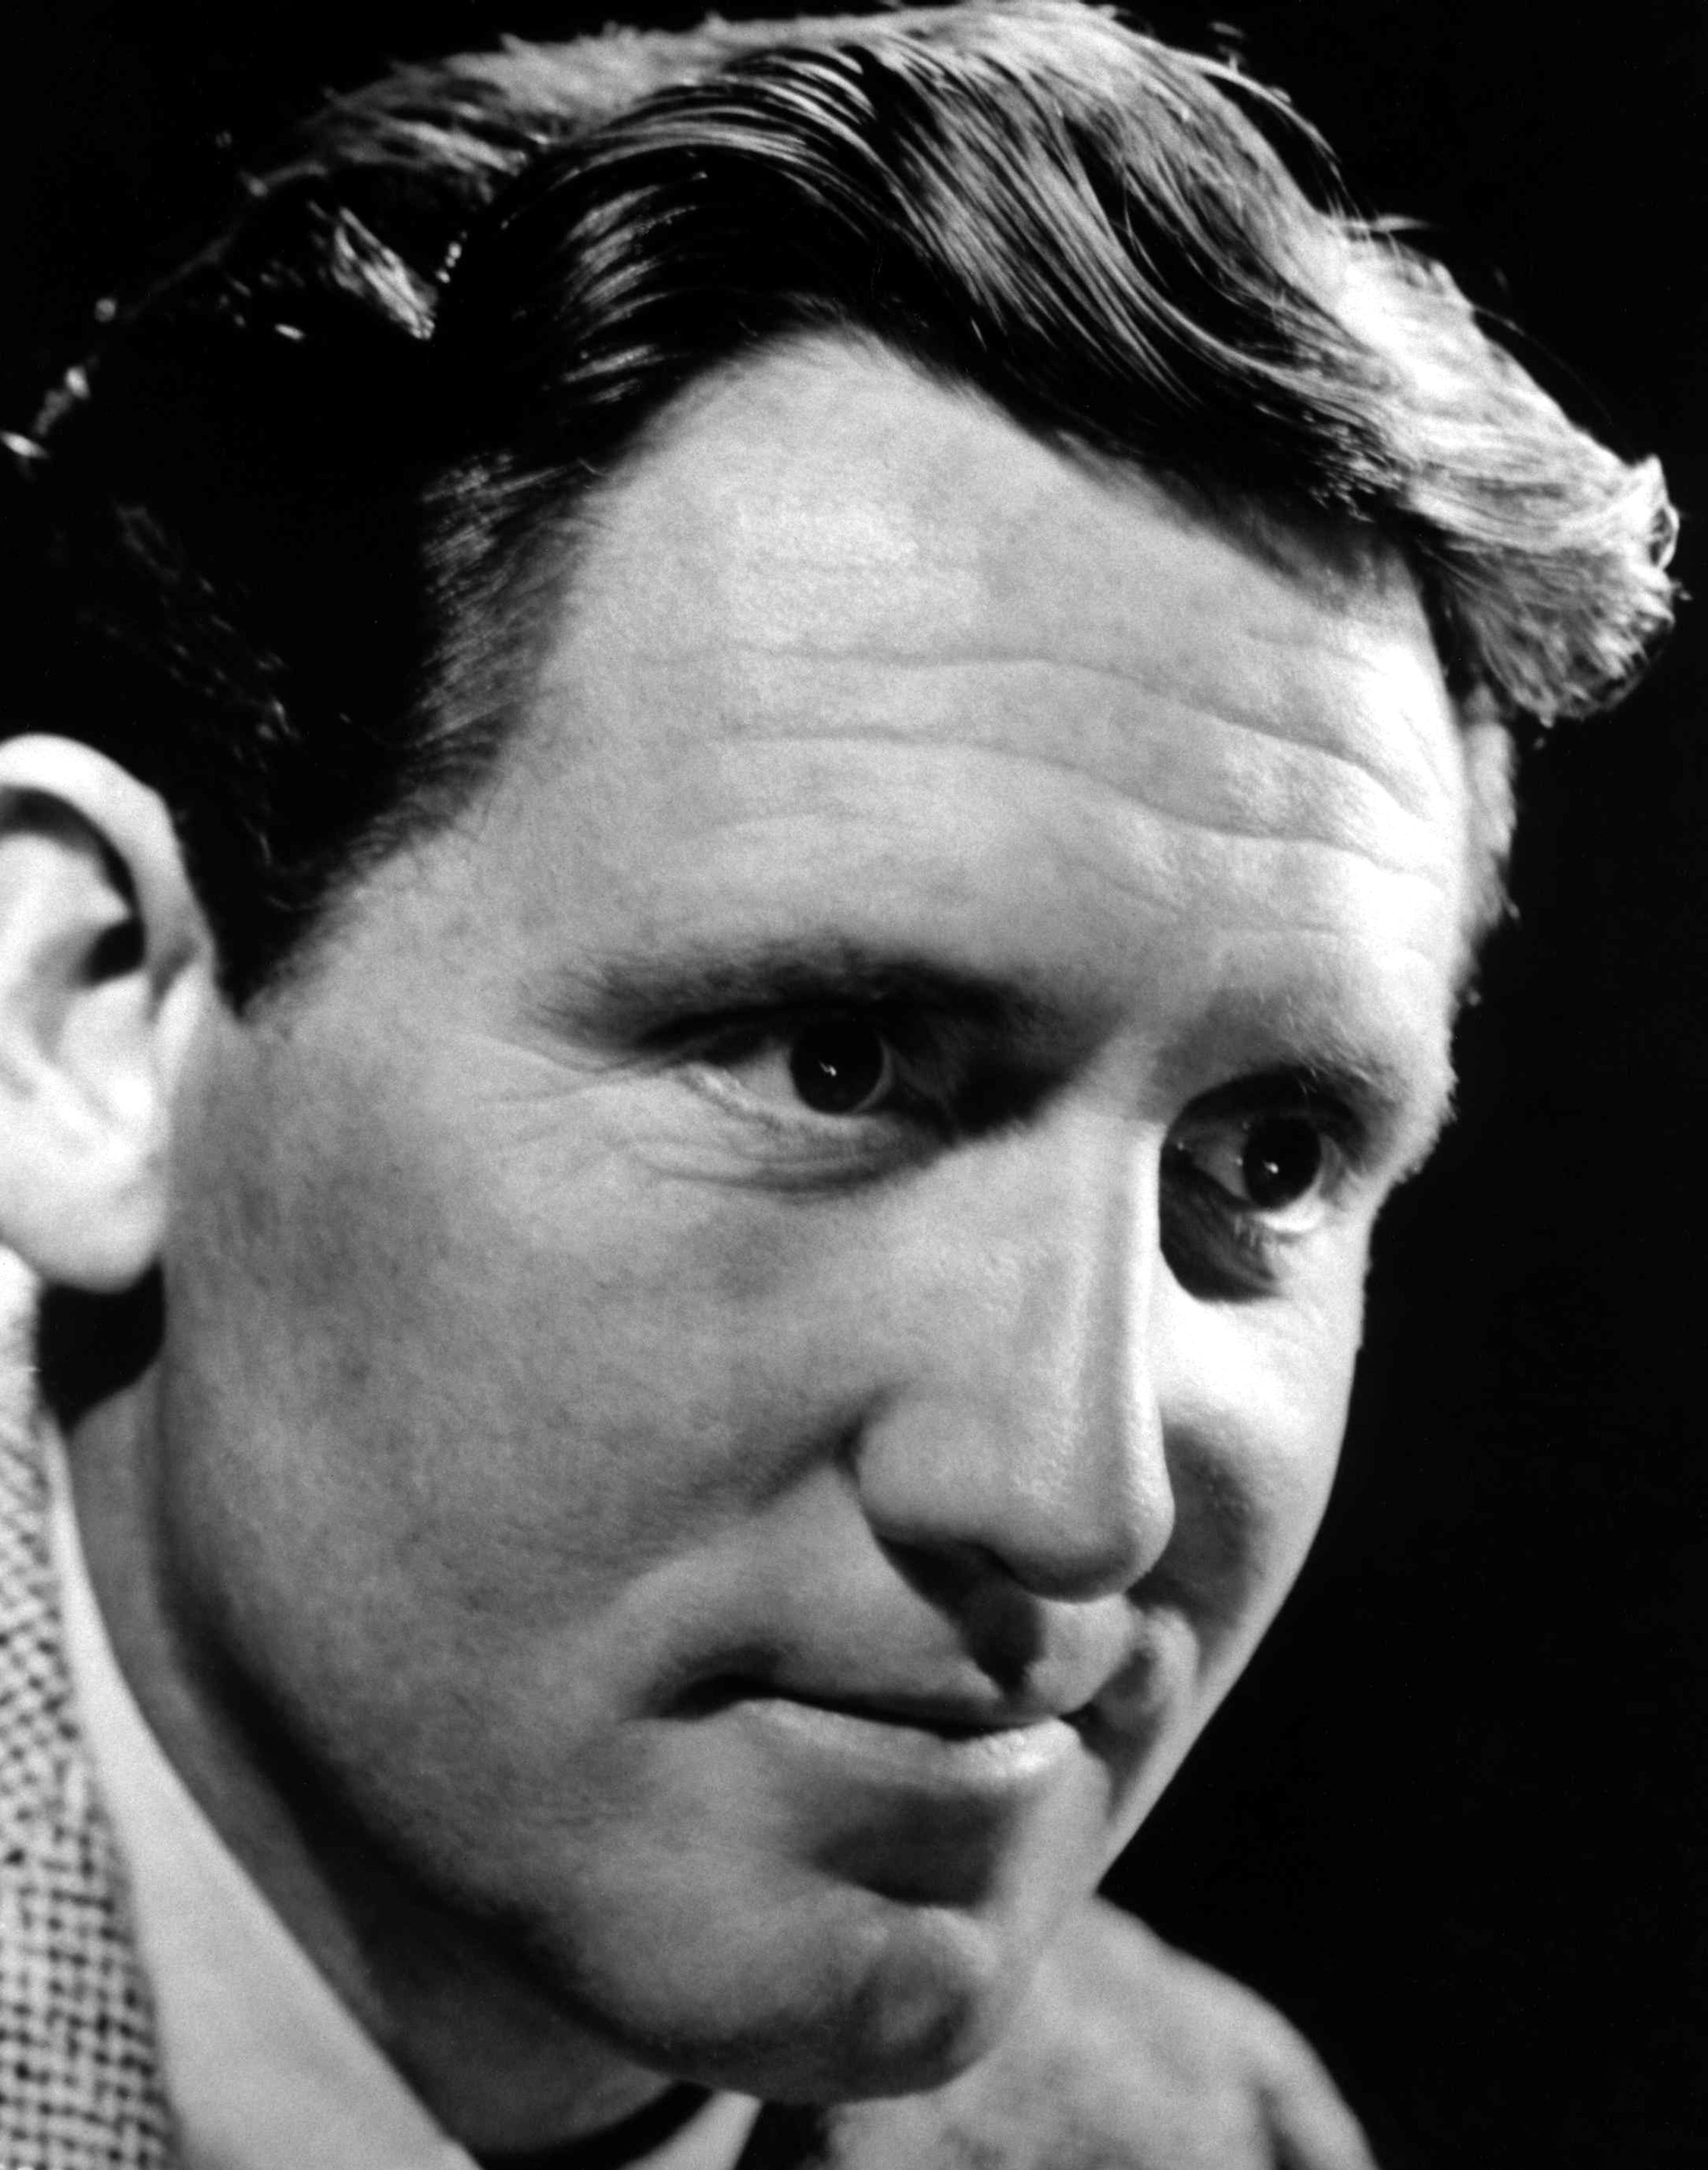 spencer tracy top 10 moviesspencer tracy and kate hepburn, spencer tracy wiki, spencer tracy films, spencer tracy top 10 movies, spencer tracy best movies, spencer tracy sinatra, spencer tracy katharine hepburn, spencer tracy imdb, spencer tracy biography, spencer tracy katharine hepburn movies, spencer tracy movies list, spencer tracy filmography, spencer tracy wife, spencer tracy wikipedia, spencer tracy quotes, spencer tracy actor, spencer tracy grave, spencer tracy filmleri, spencer tracy biografia, spencer tracy movies